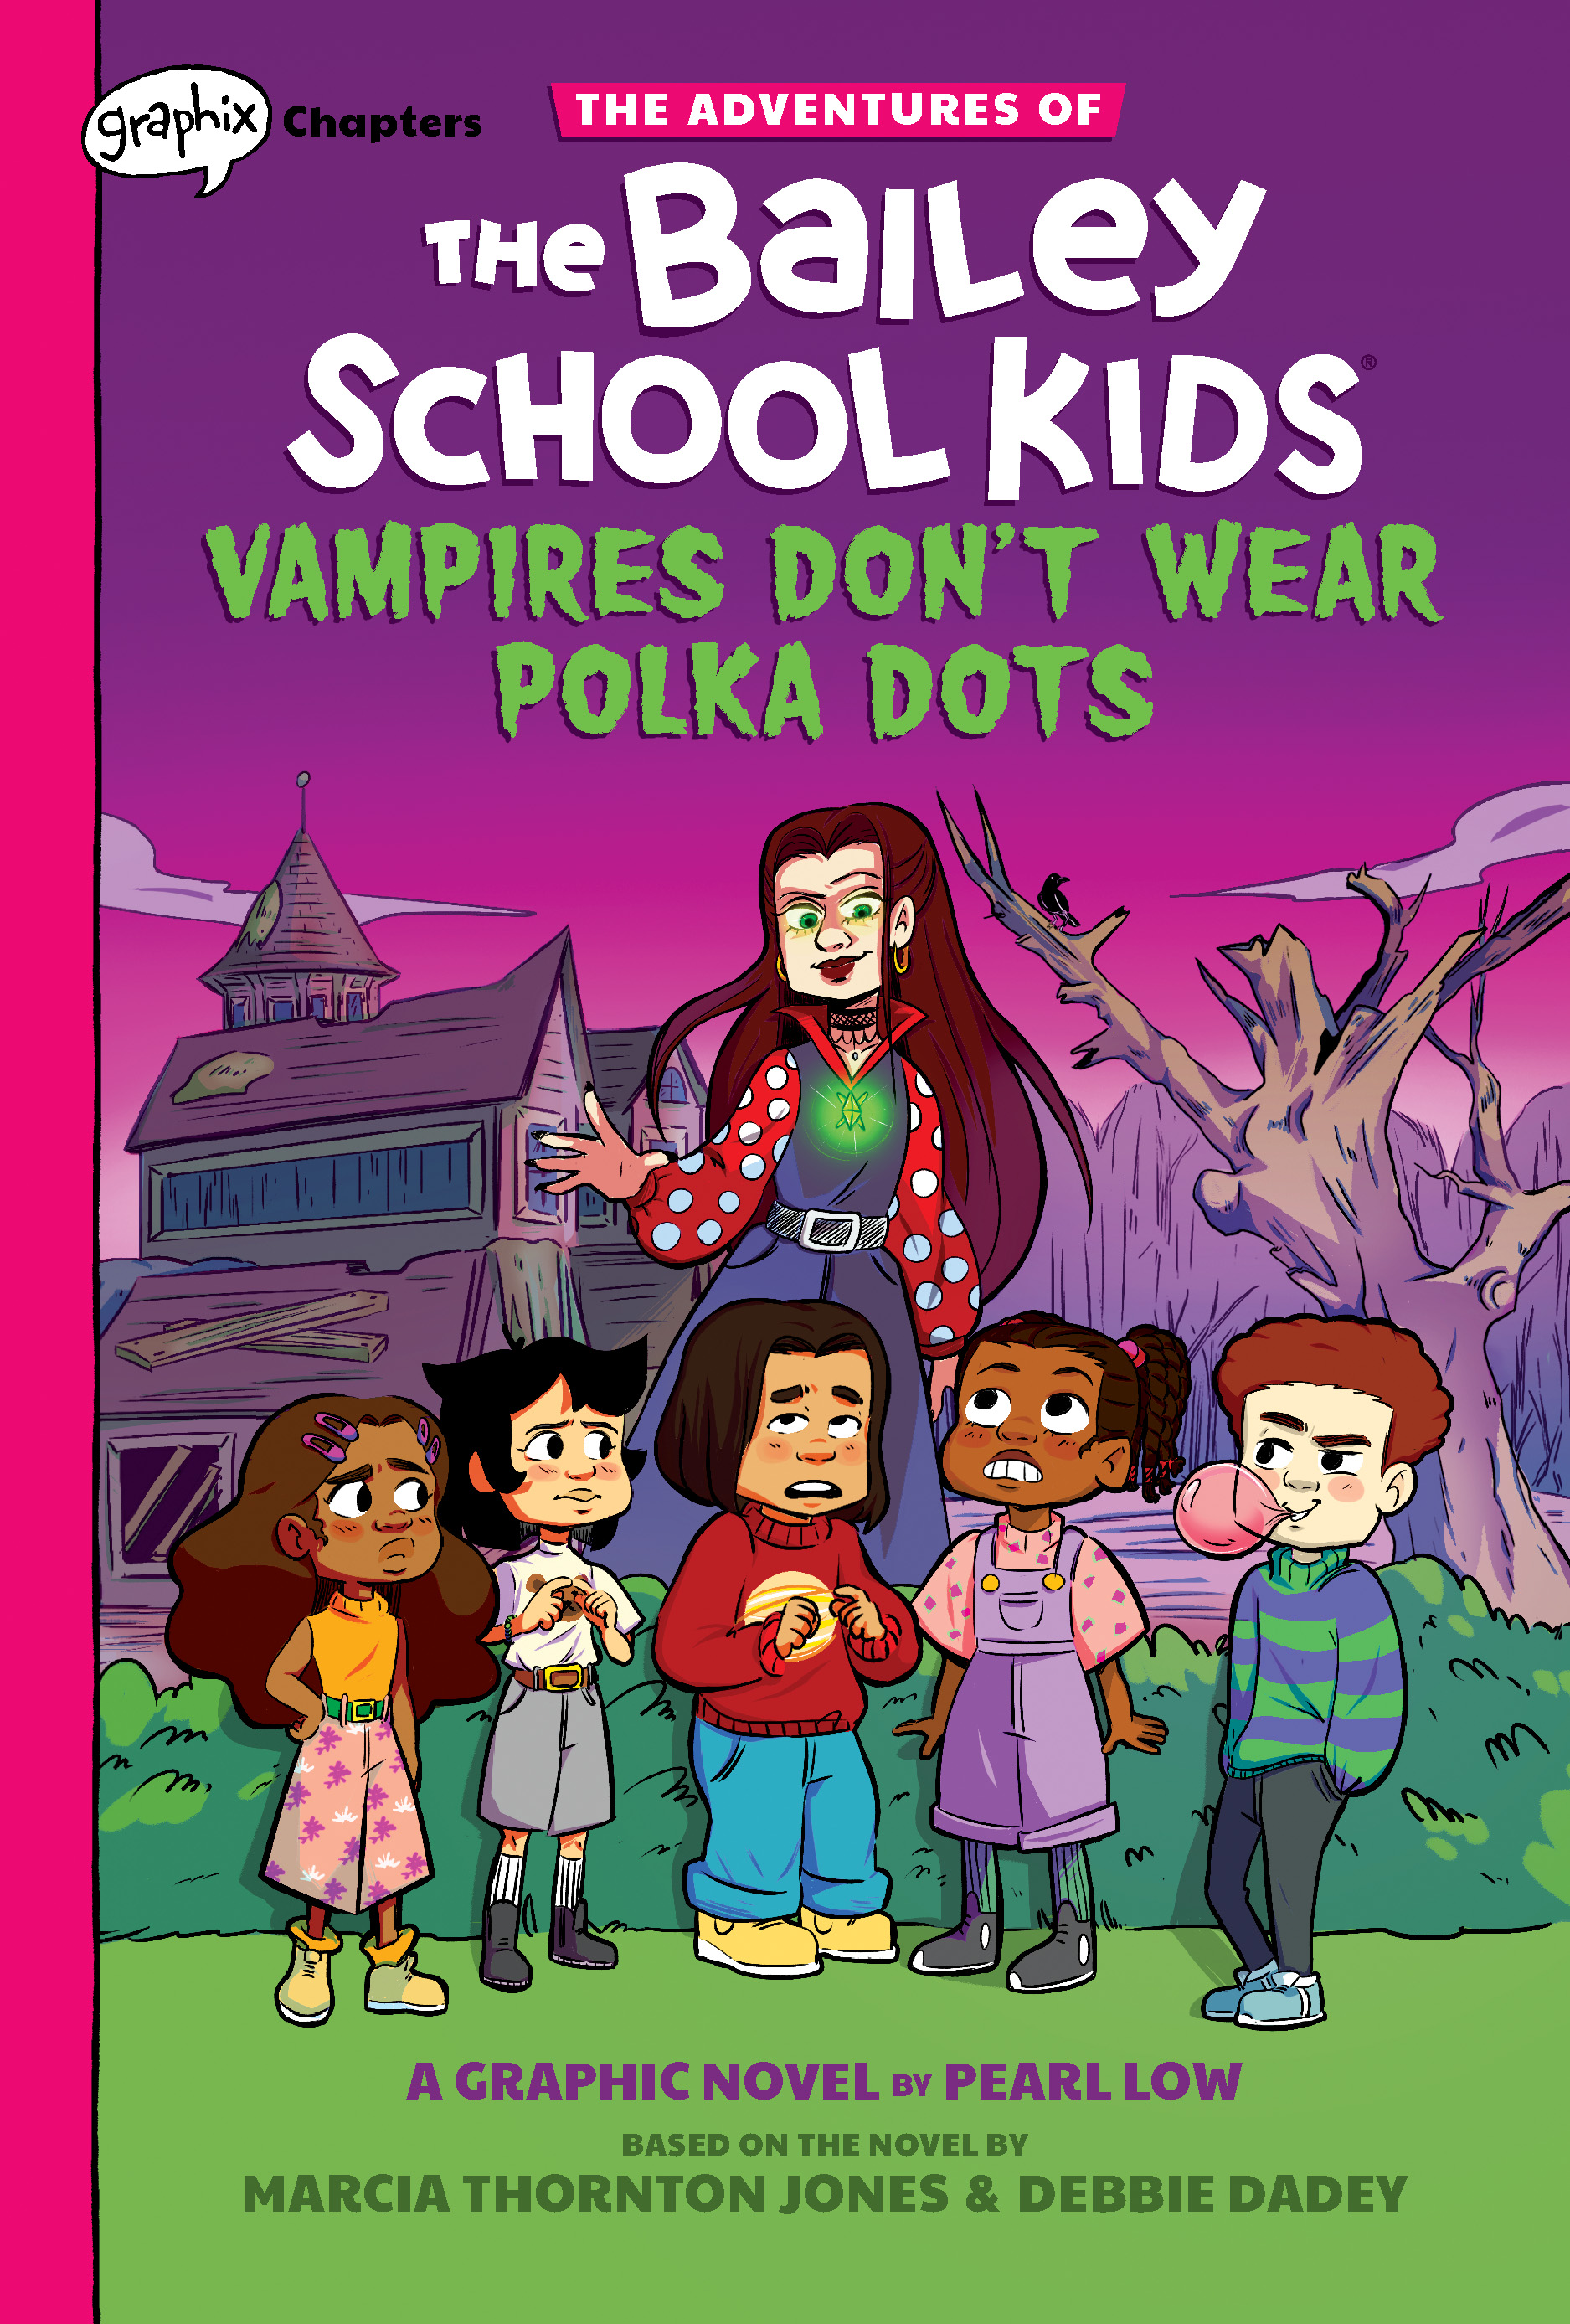 Vampires Don't Wear Polka Dots: A Graphix Chapters Book (The Adventures of the Bailey School Kids #1)